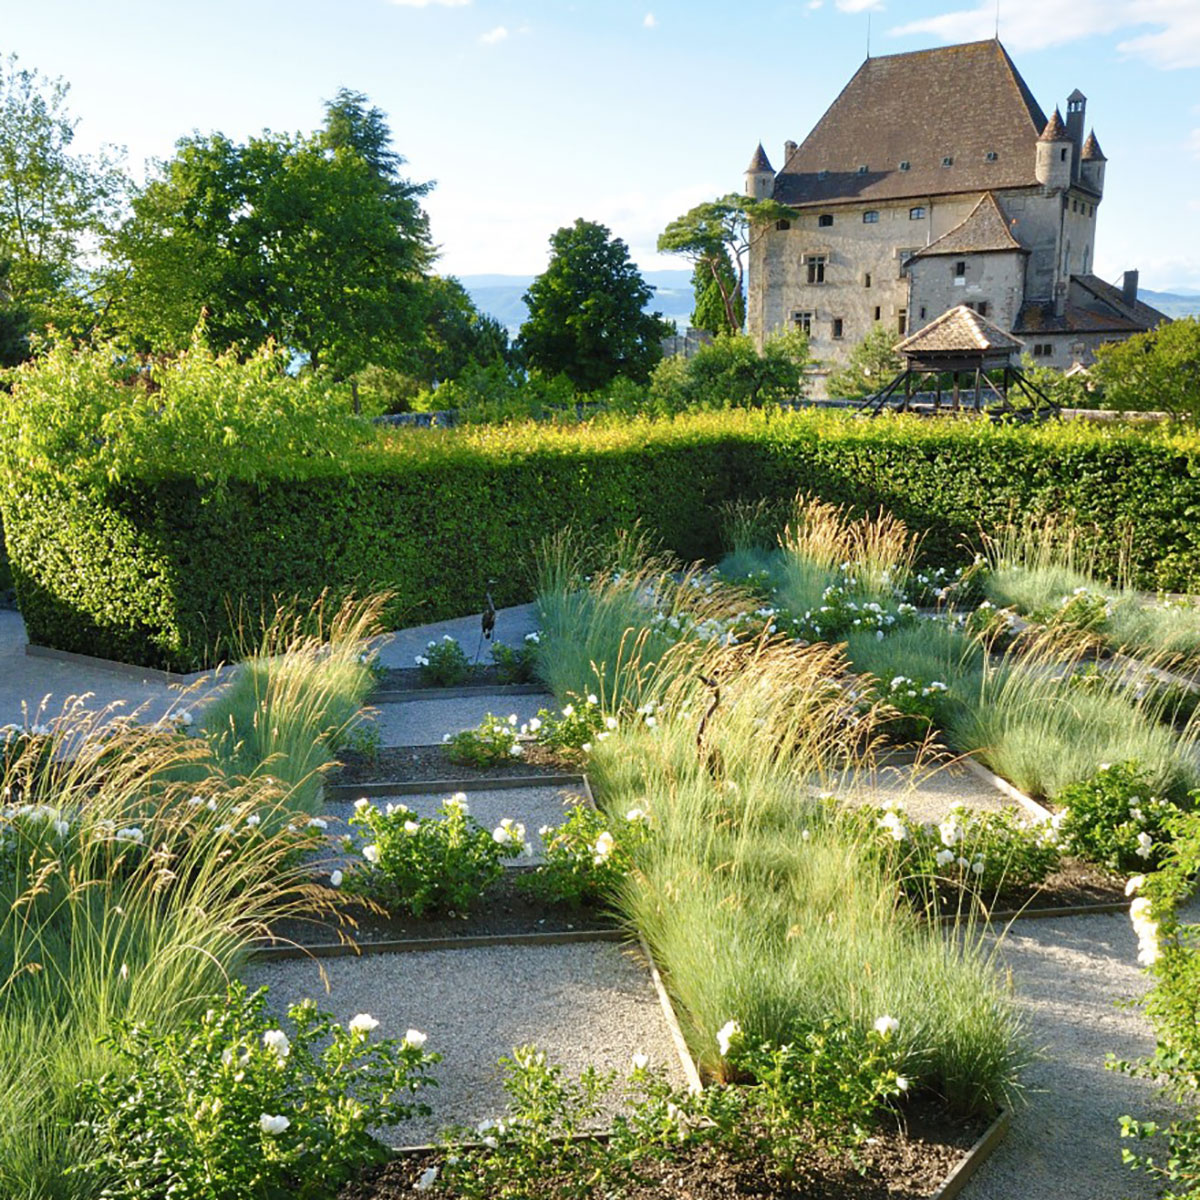 The Garden of Five Senses – Yvoire – France - Remarkable Garden